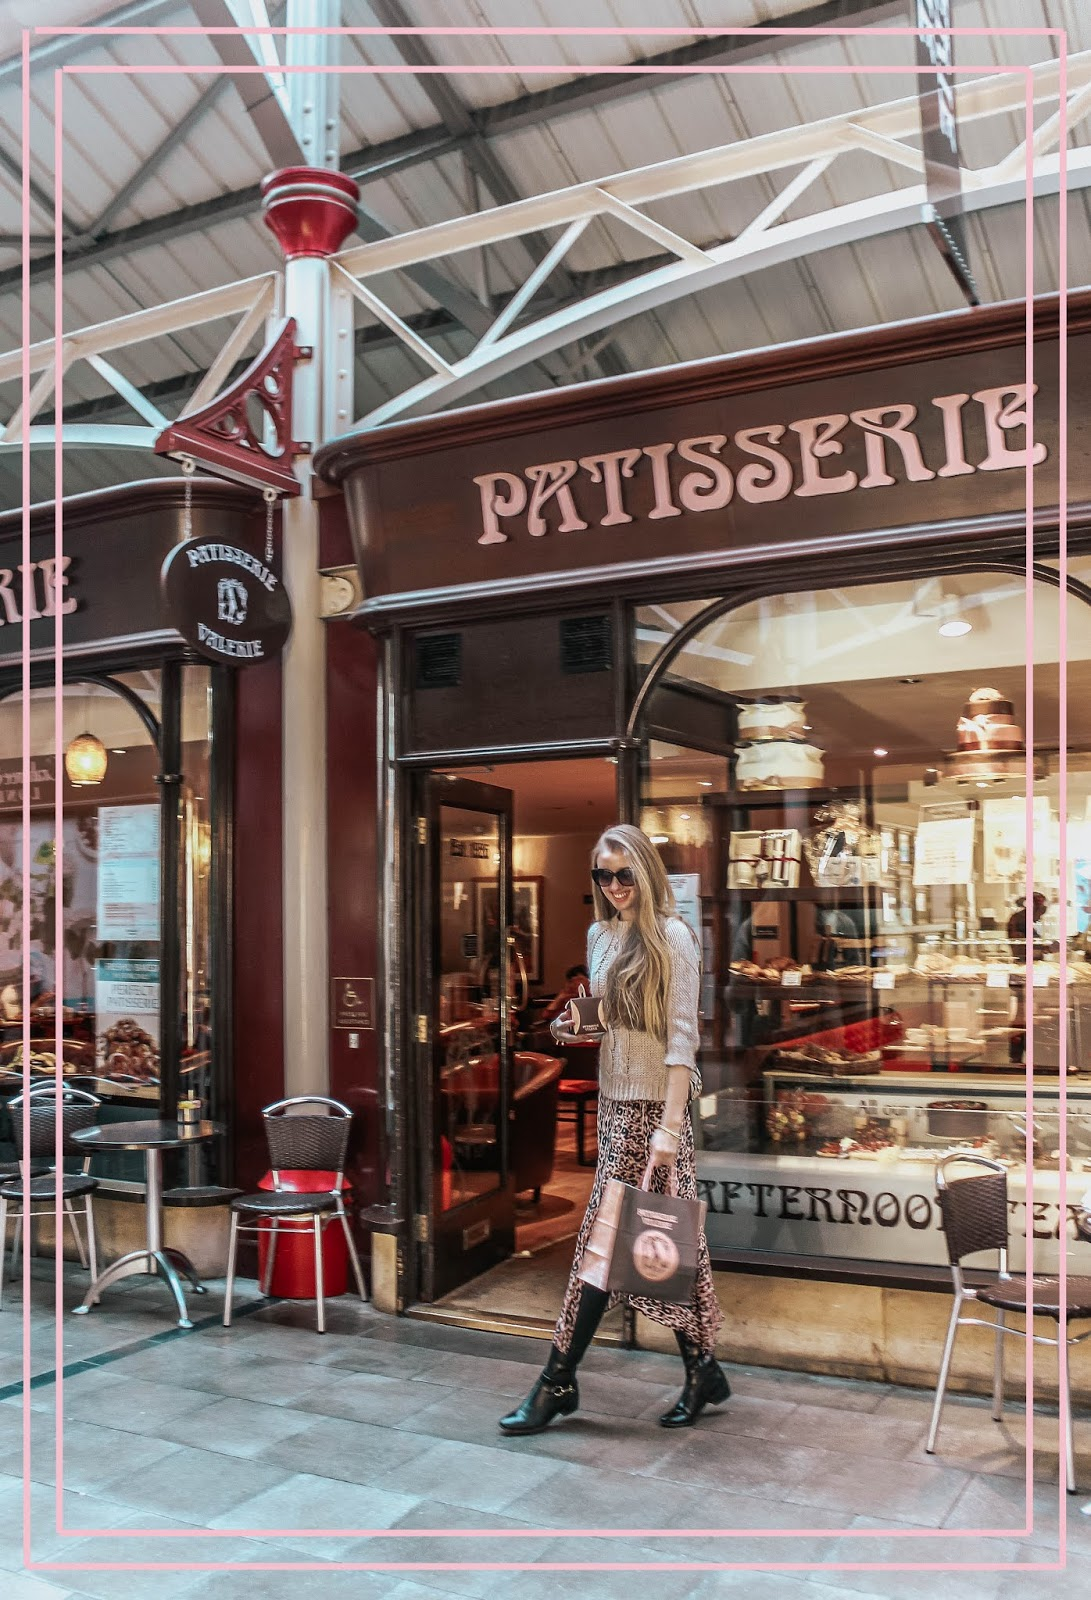 Patisserie Valerie Afternoon Tea for 2 in Windsor